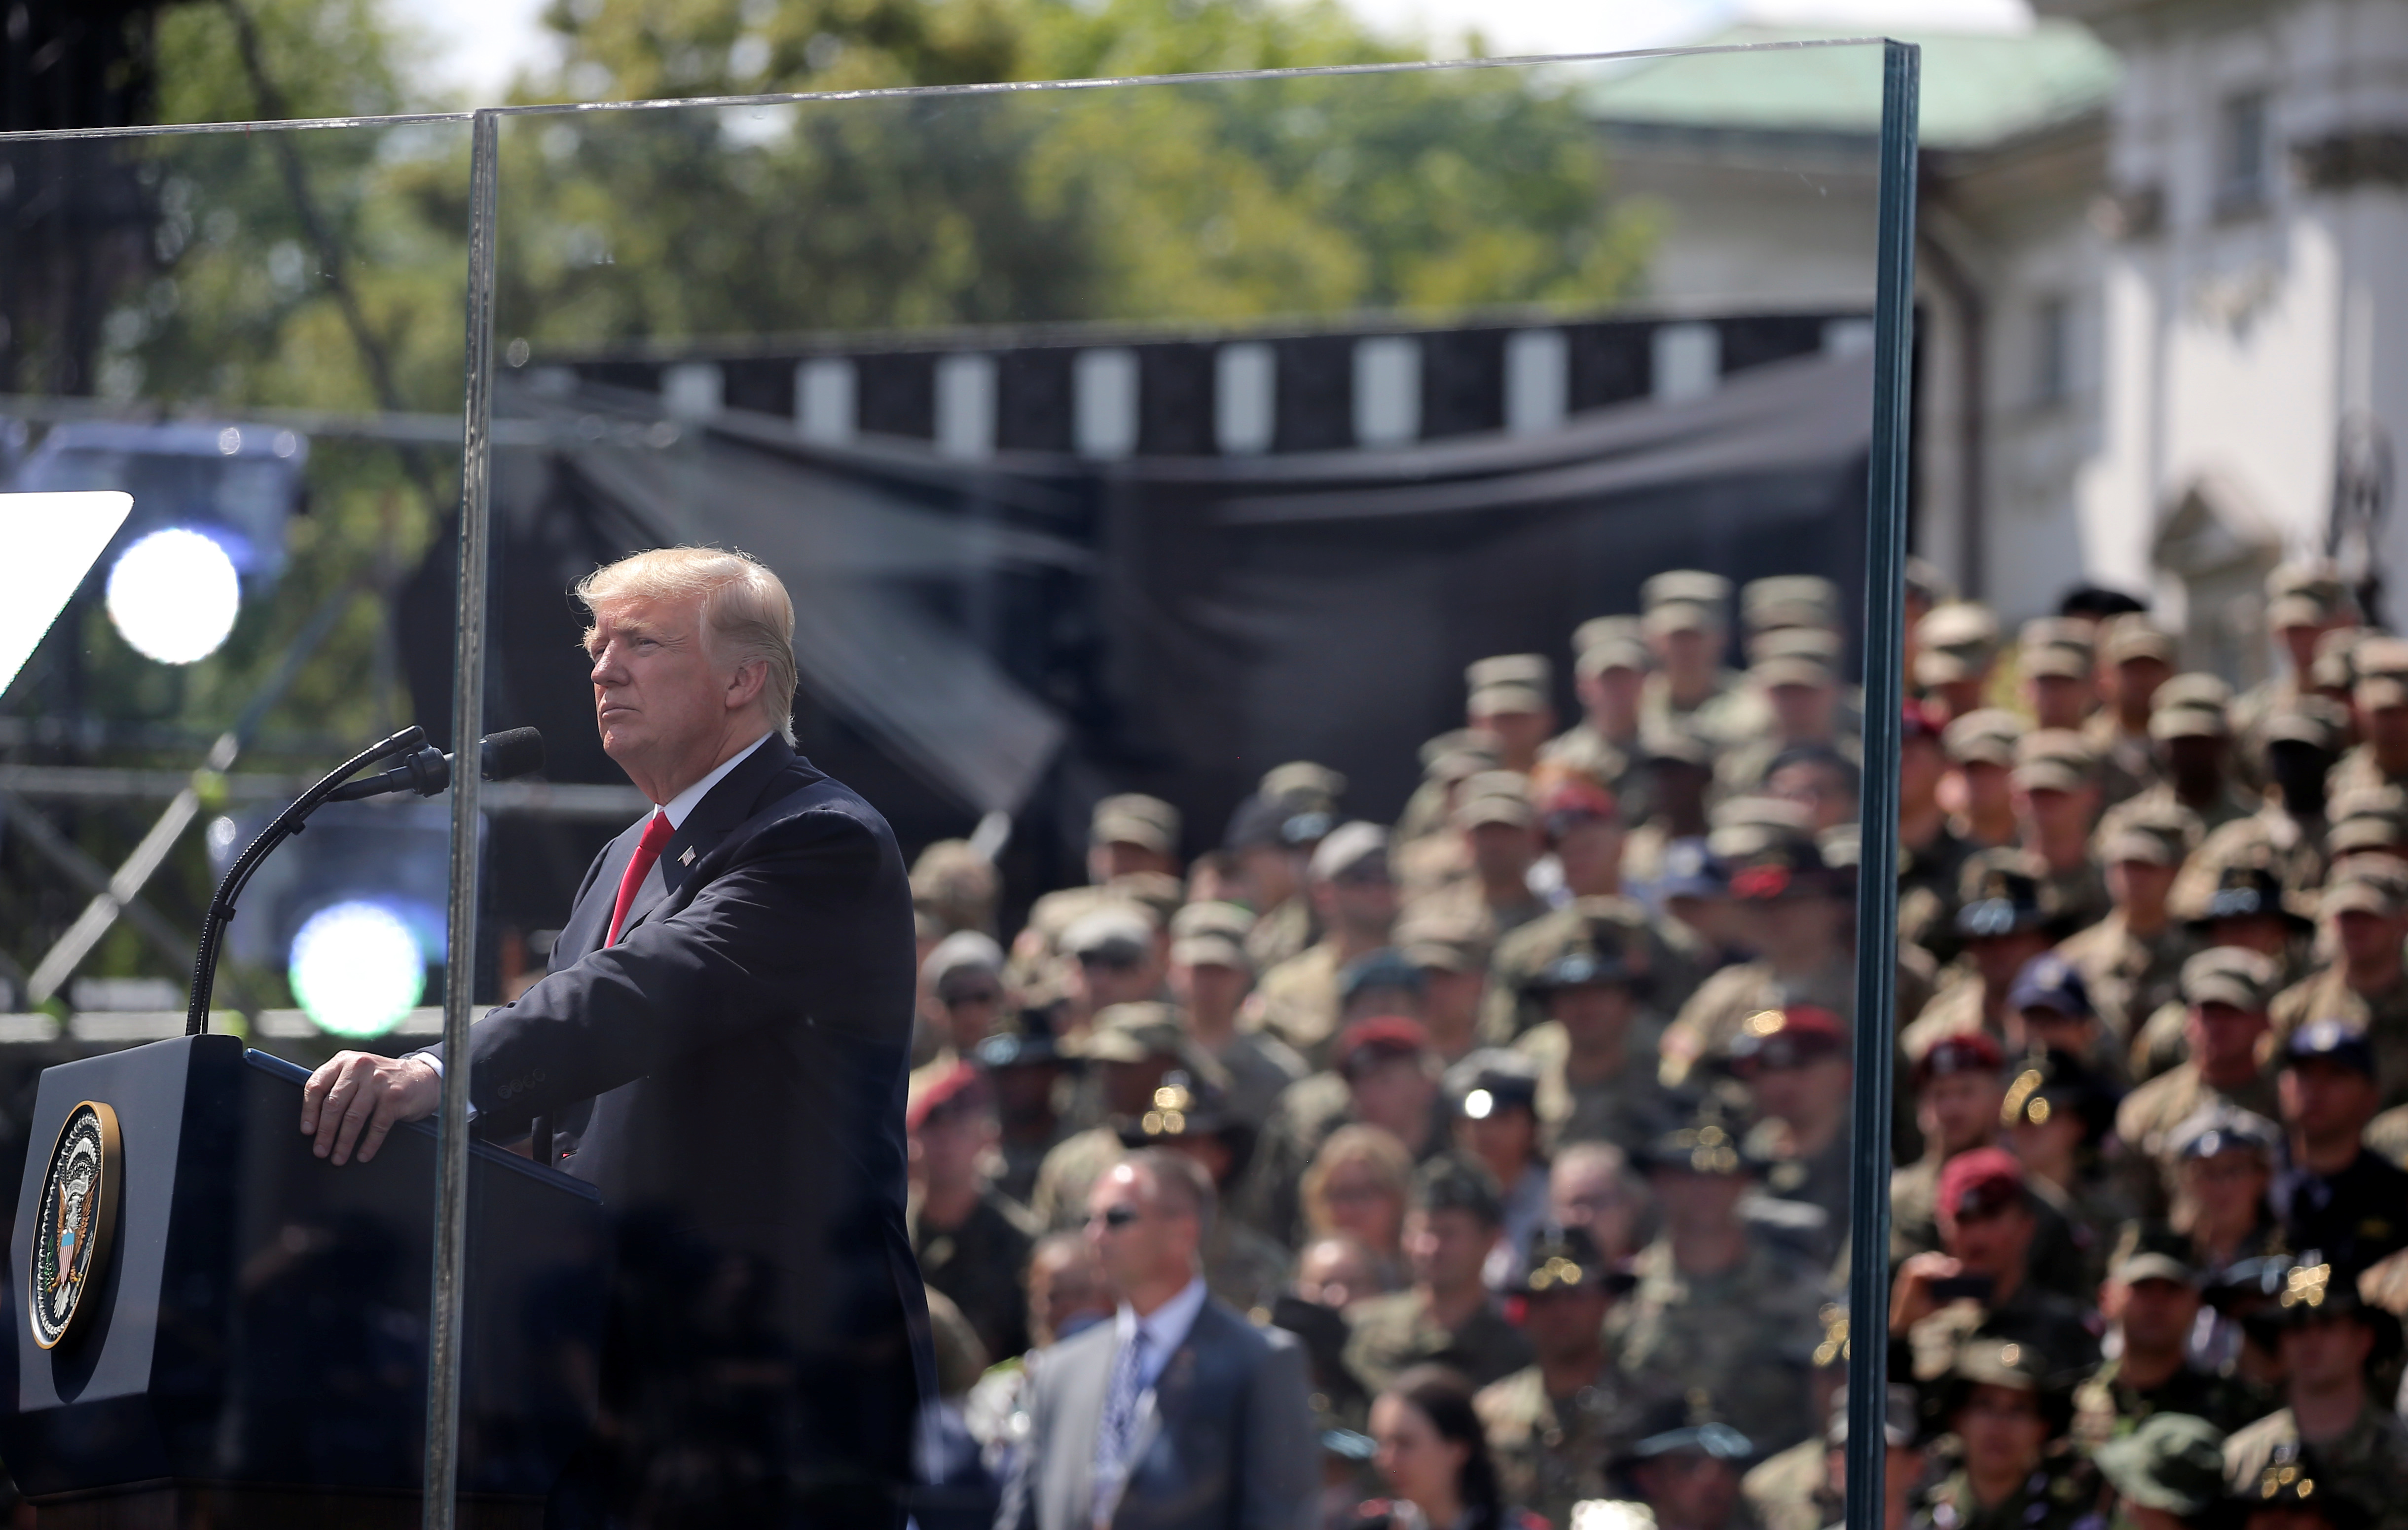 U.S. President Donald Trump gives a public speech at Krasinski Square in Warsaw